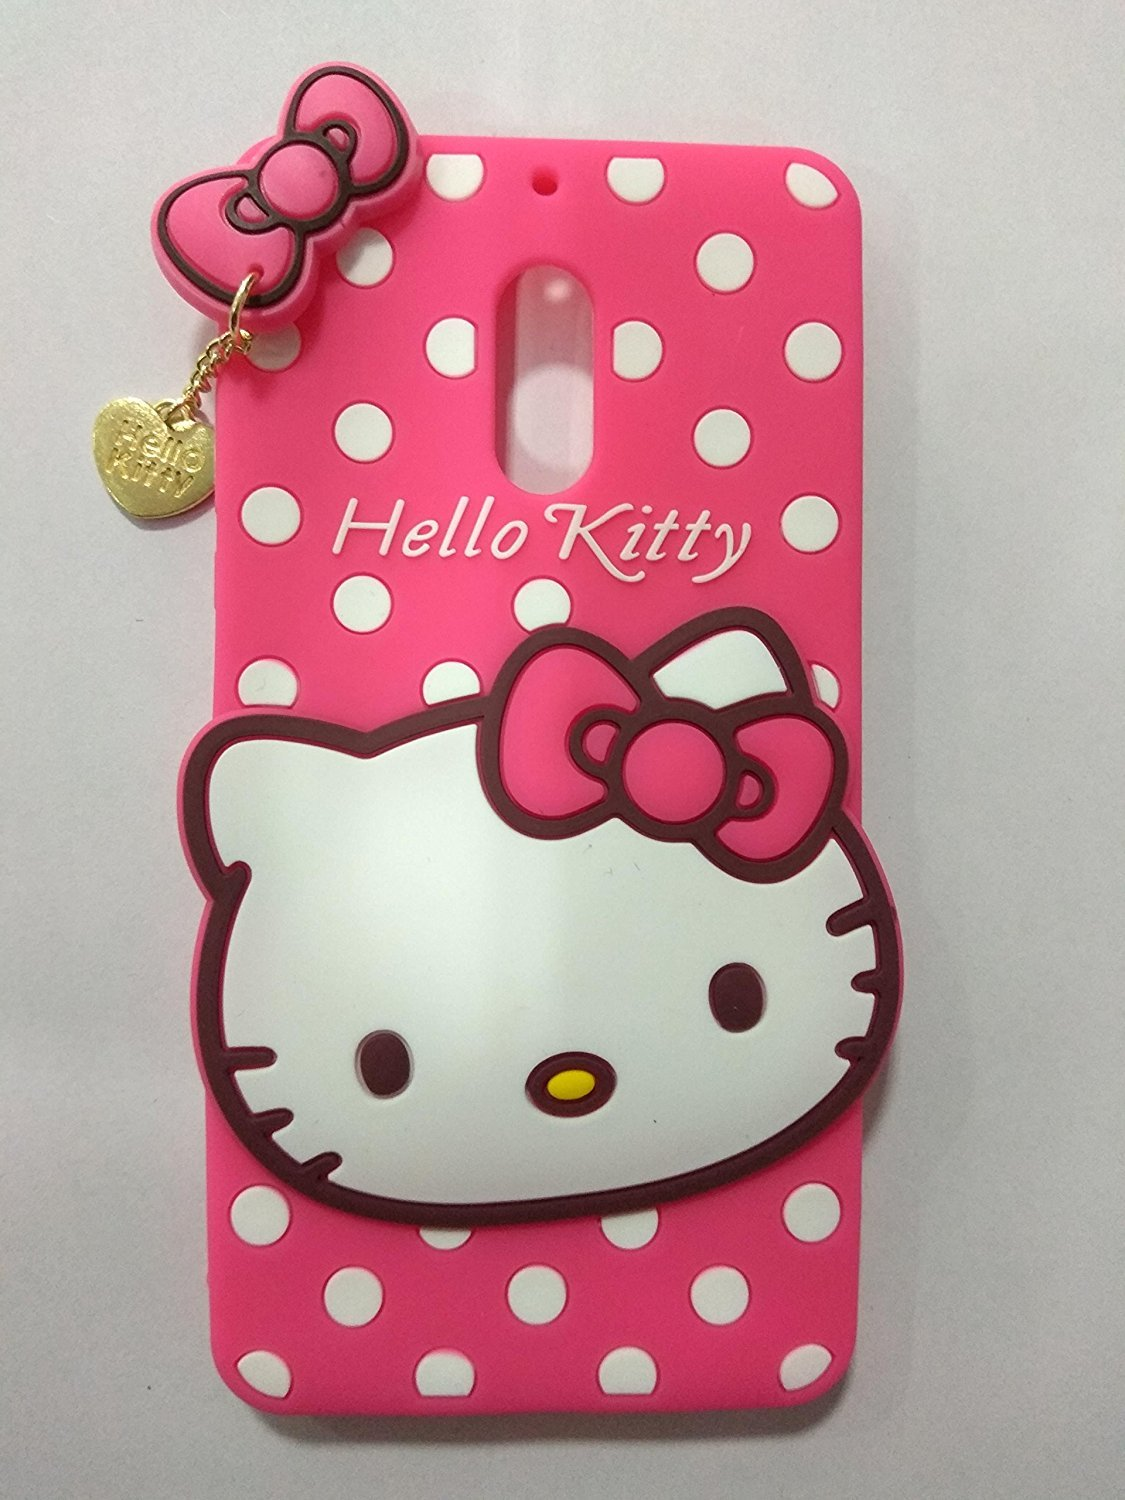 finest selection 6dd22 0c7d5 Trifty Girl's Back Cover Hello Kitty Silicon With Pendant For Nokia 6 - Pink